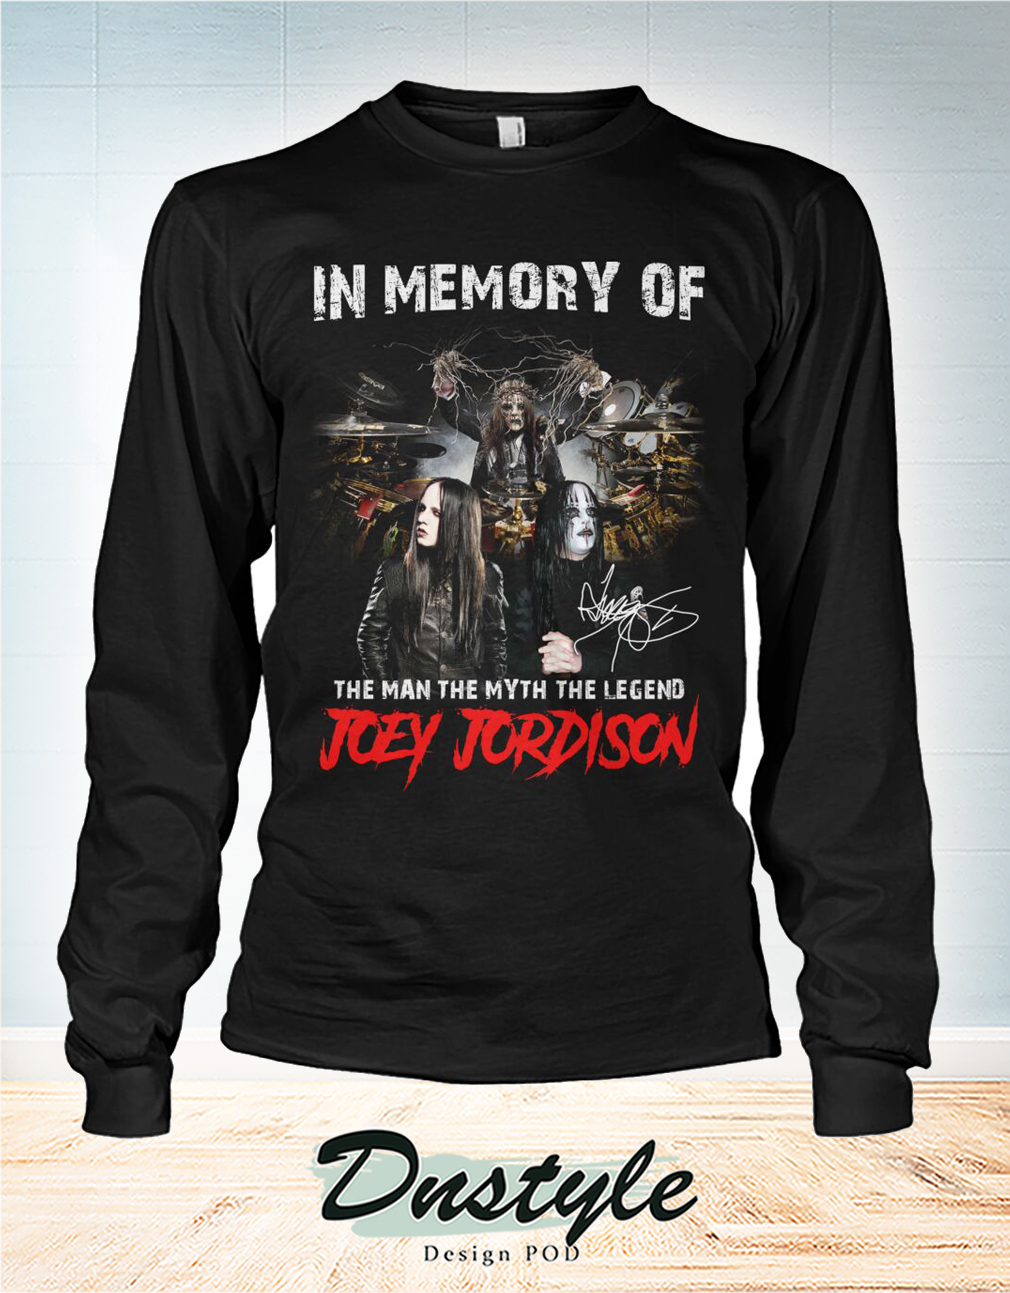 In memory of the man the myth the legend Joey Jordison long sleeve